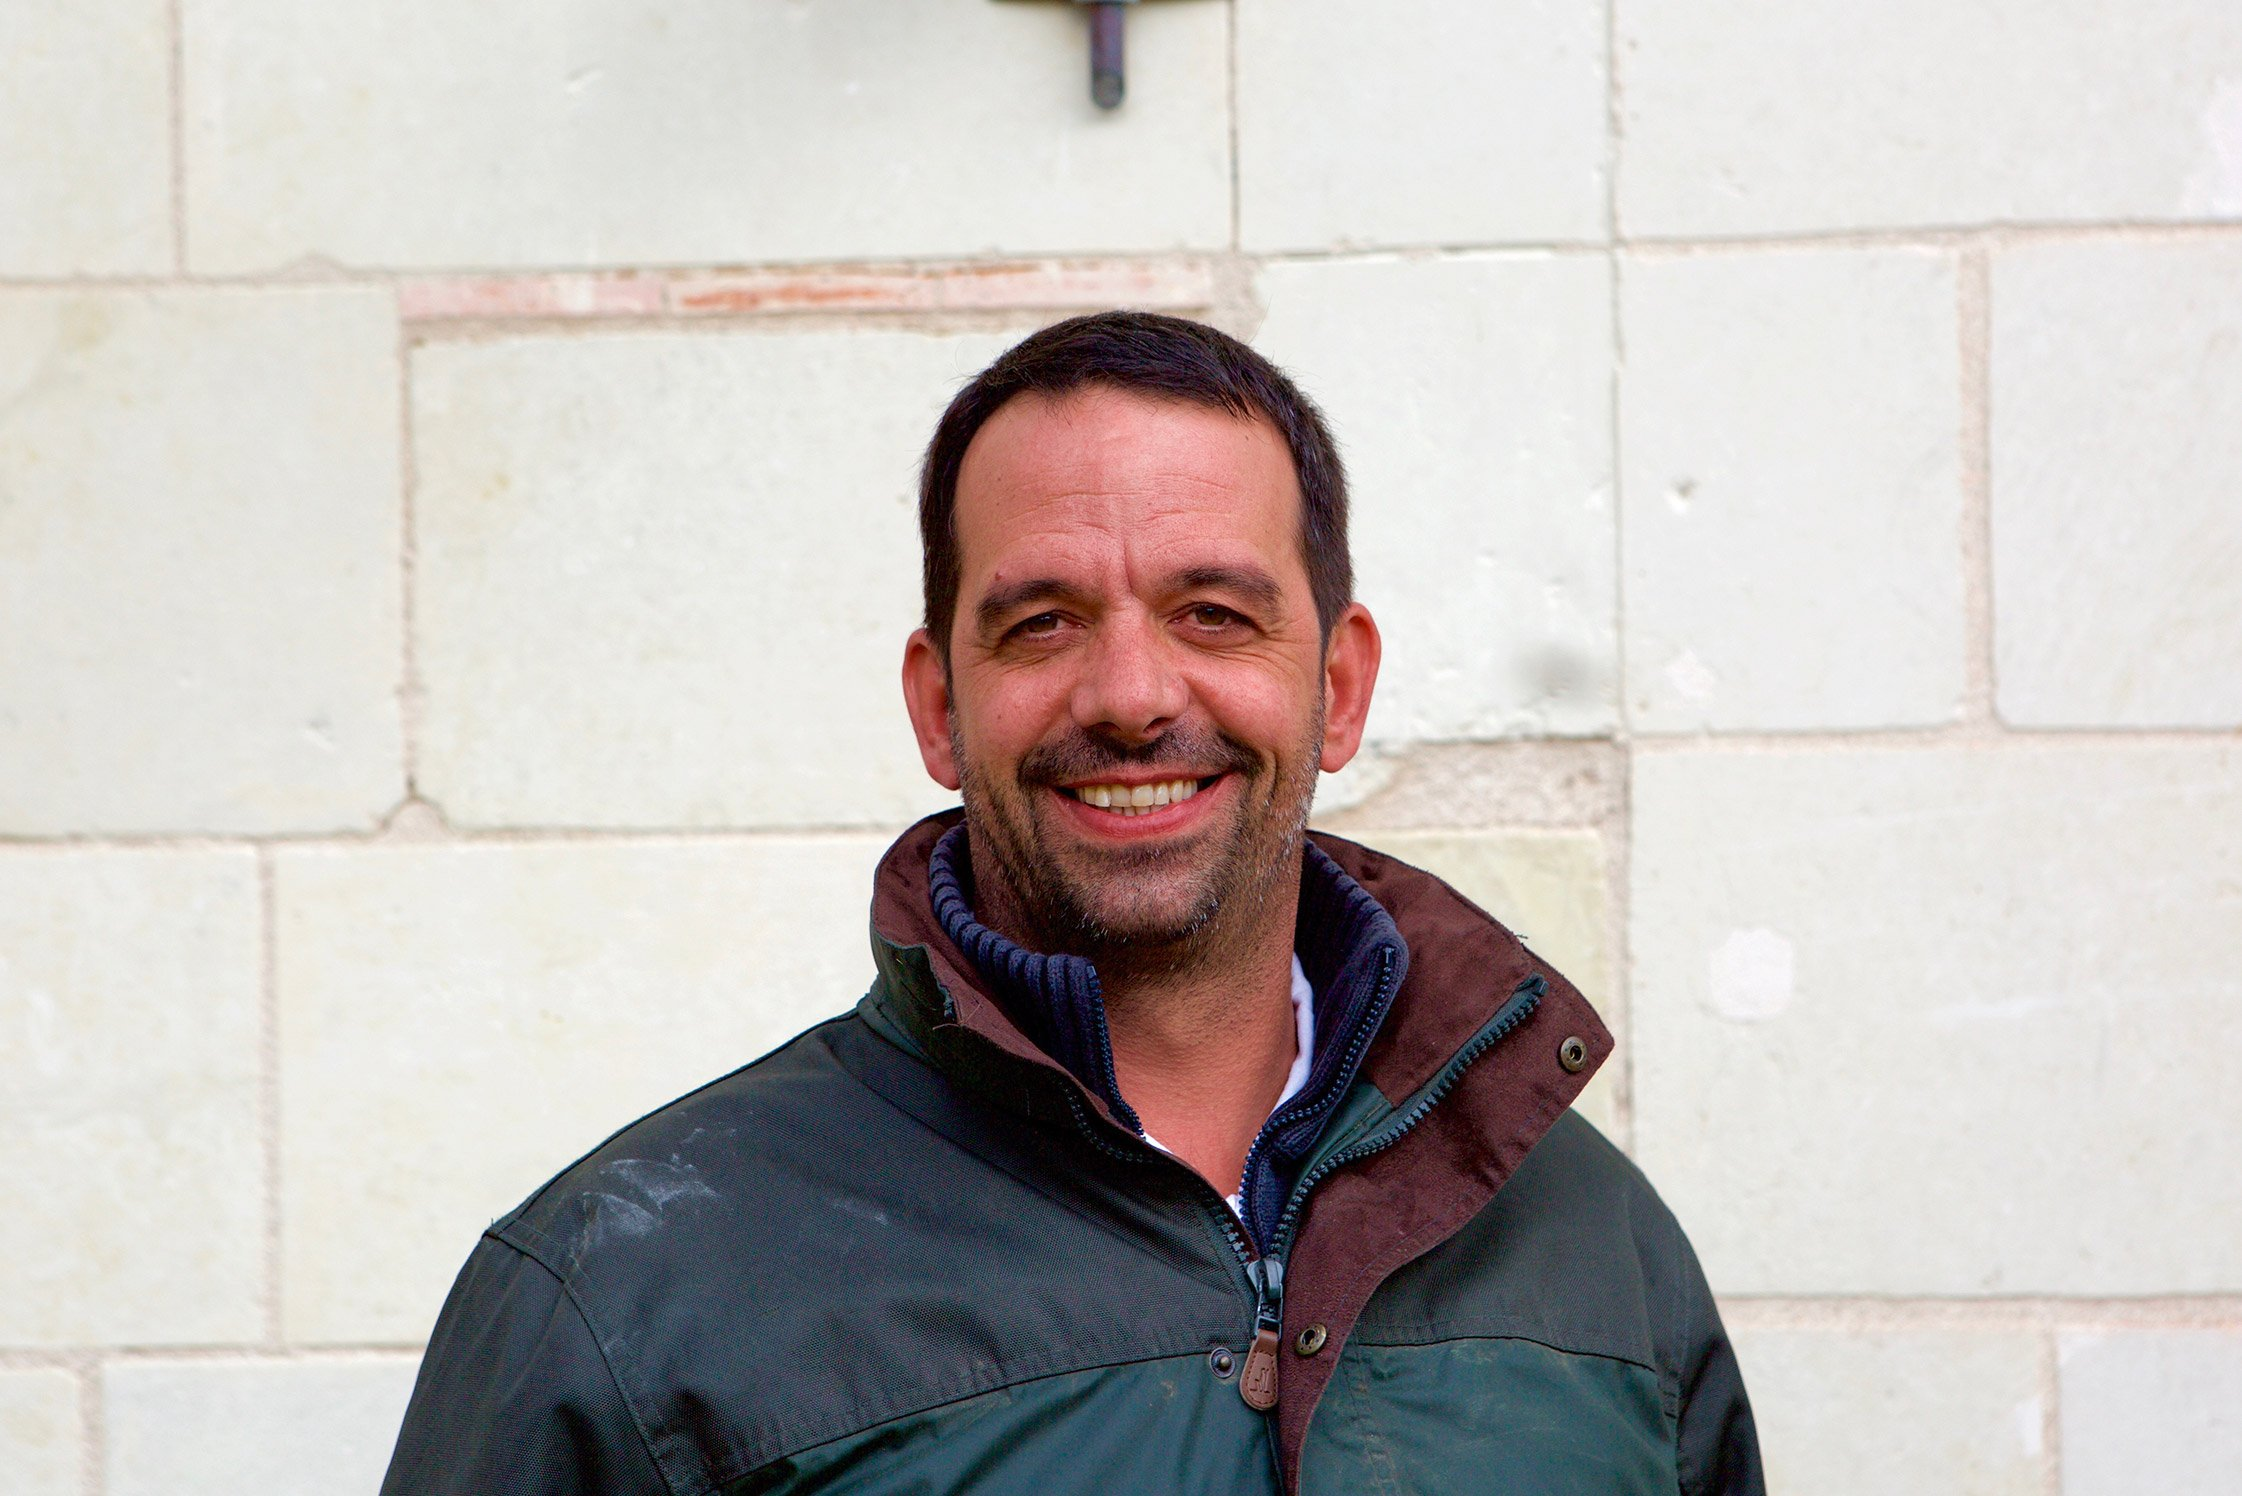 Romain Guiberteau, winemaker from Saumur in the Loire Valley